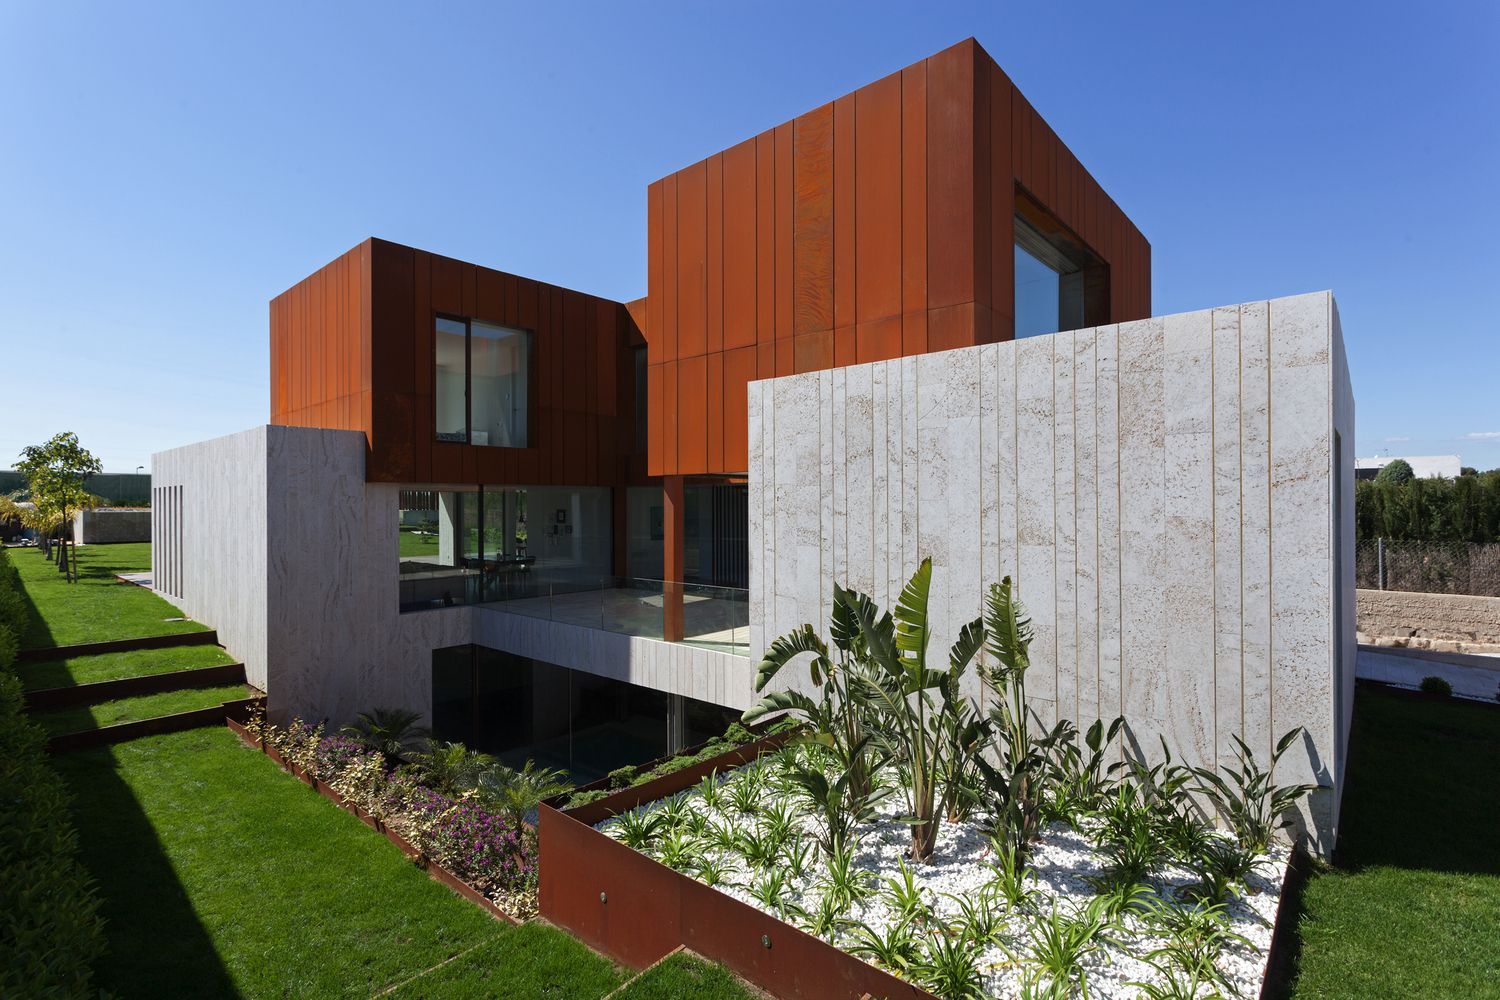 Gallery of Cs House / Antonio Altarriba Comes - 2 | Mein traumhaus ...